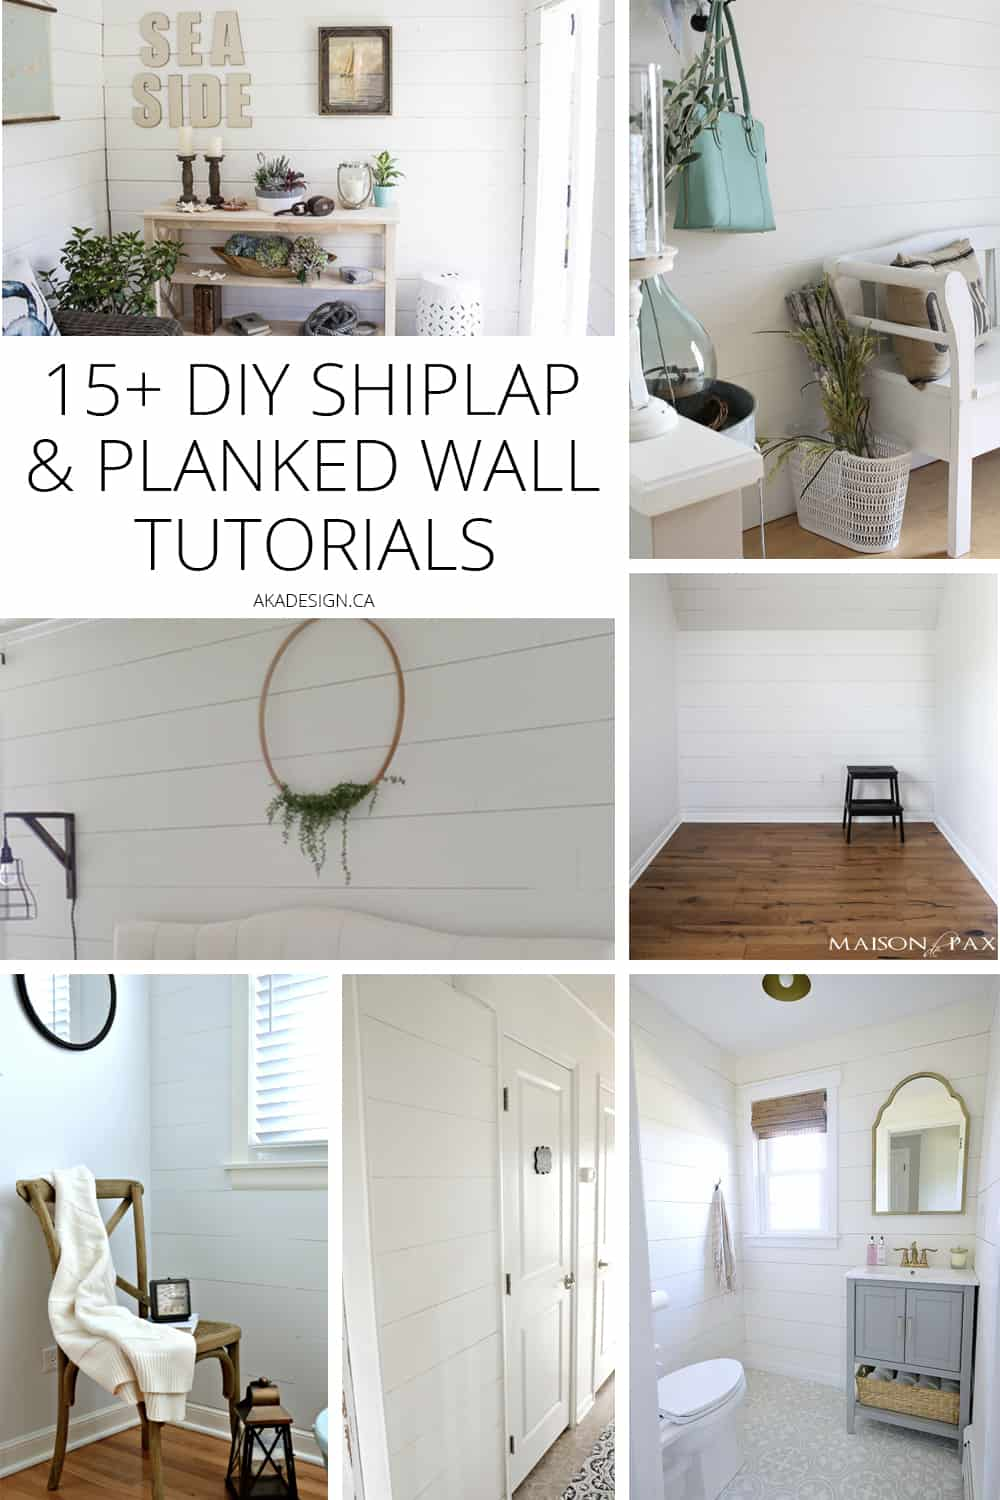 15 diy shiplap and planked wall tutorials you should see - Affordable diy home makeovers that you should consider ...